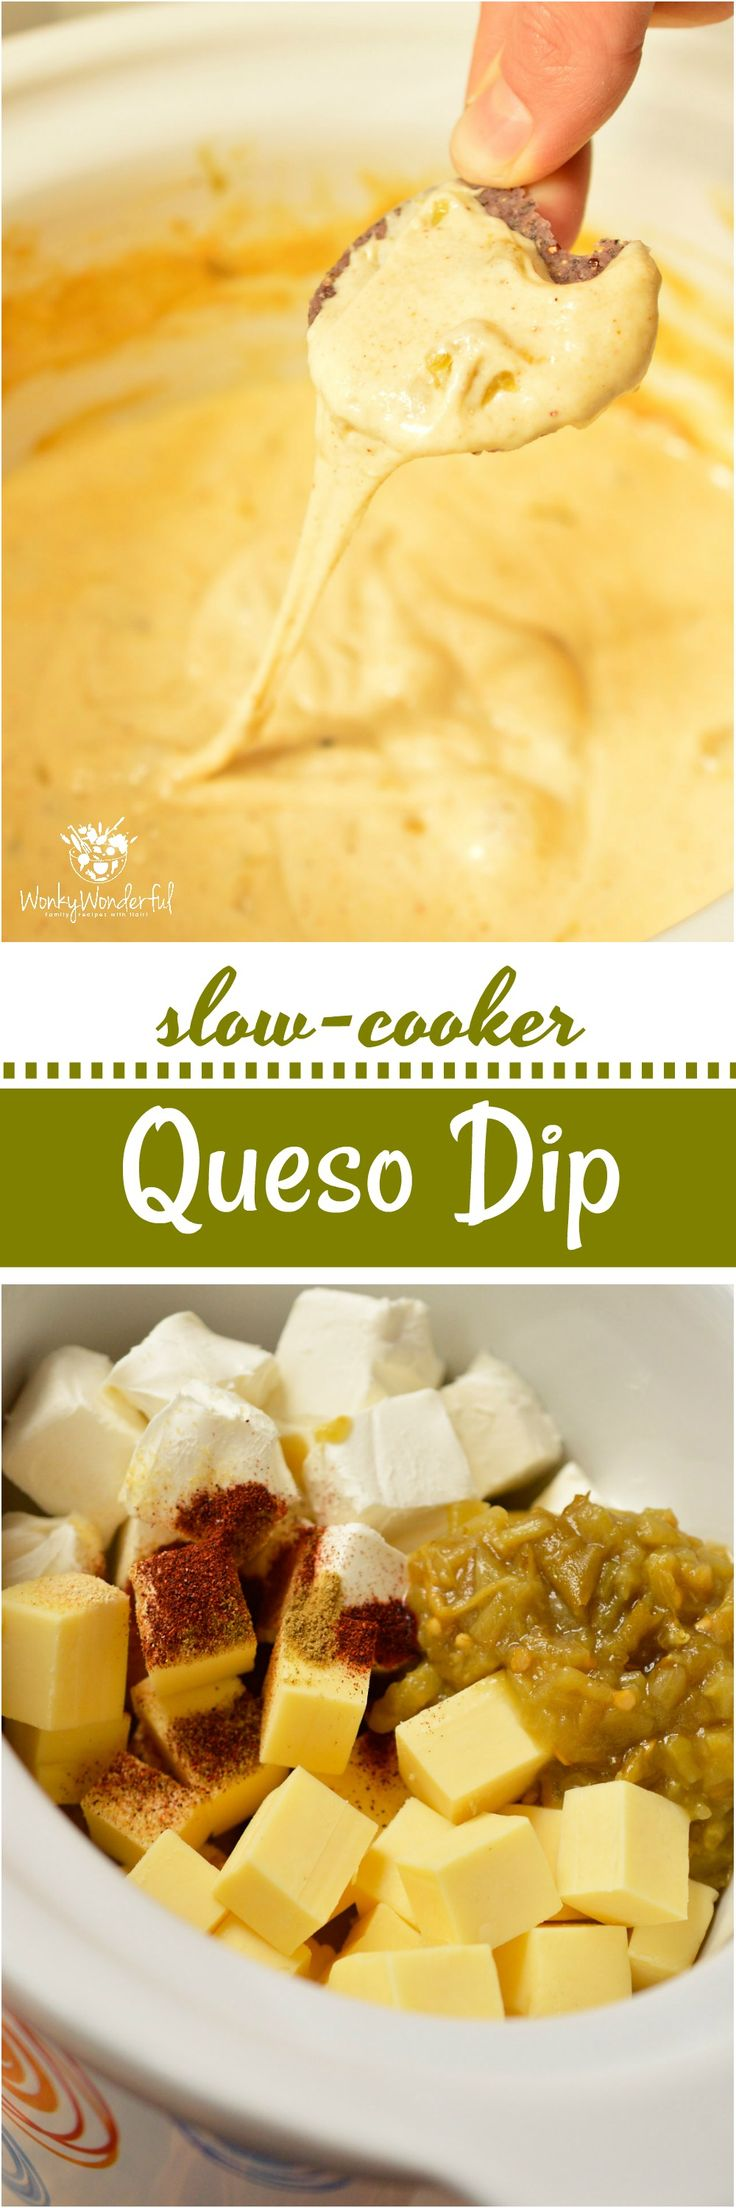 Get game day started with thisEasy White Queso Dip Recipe and a fantastic snack variety! Just a few simple ingredients in your slow cooker and this crock pot appetizer is good to go. Get out of the kitchen and enjoy the game with this no-fuss game day food!